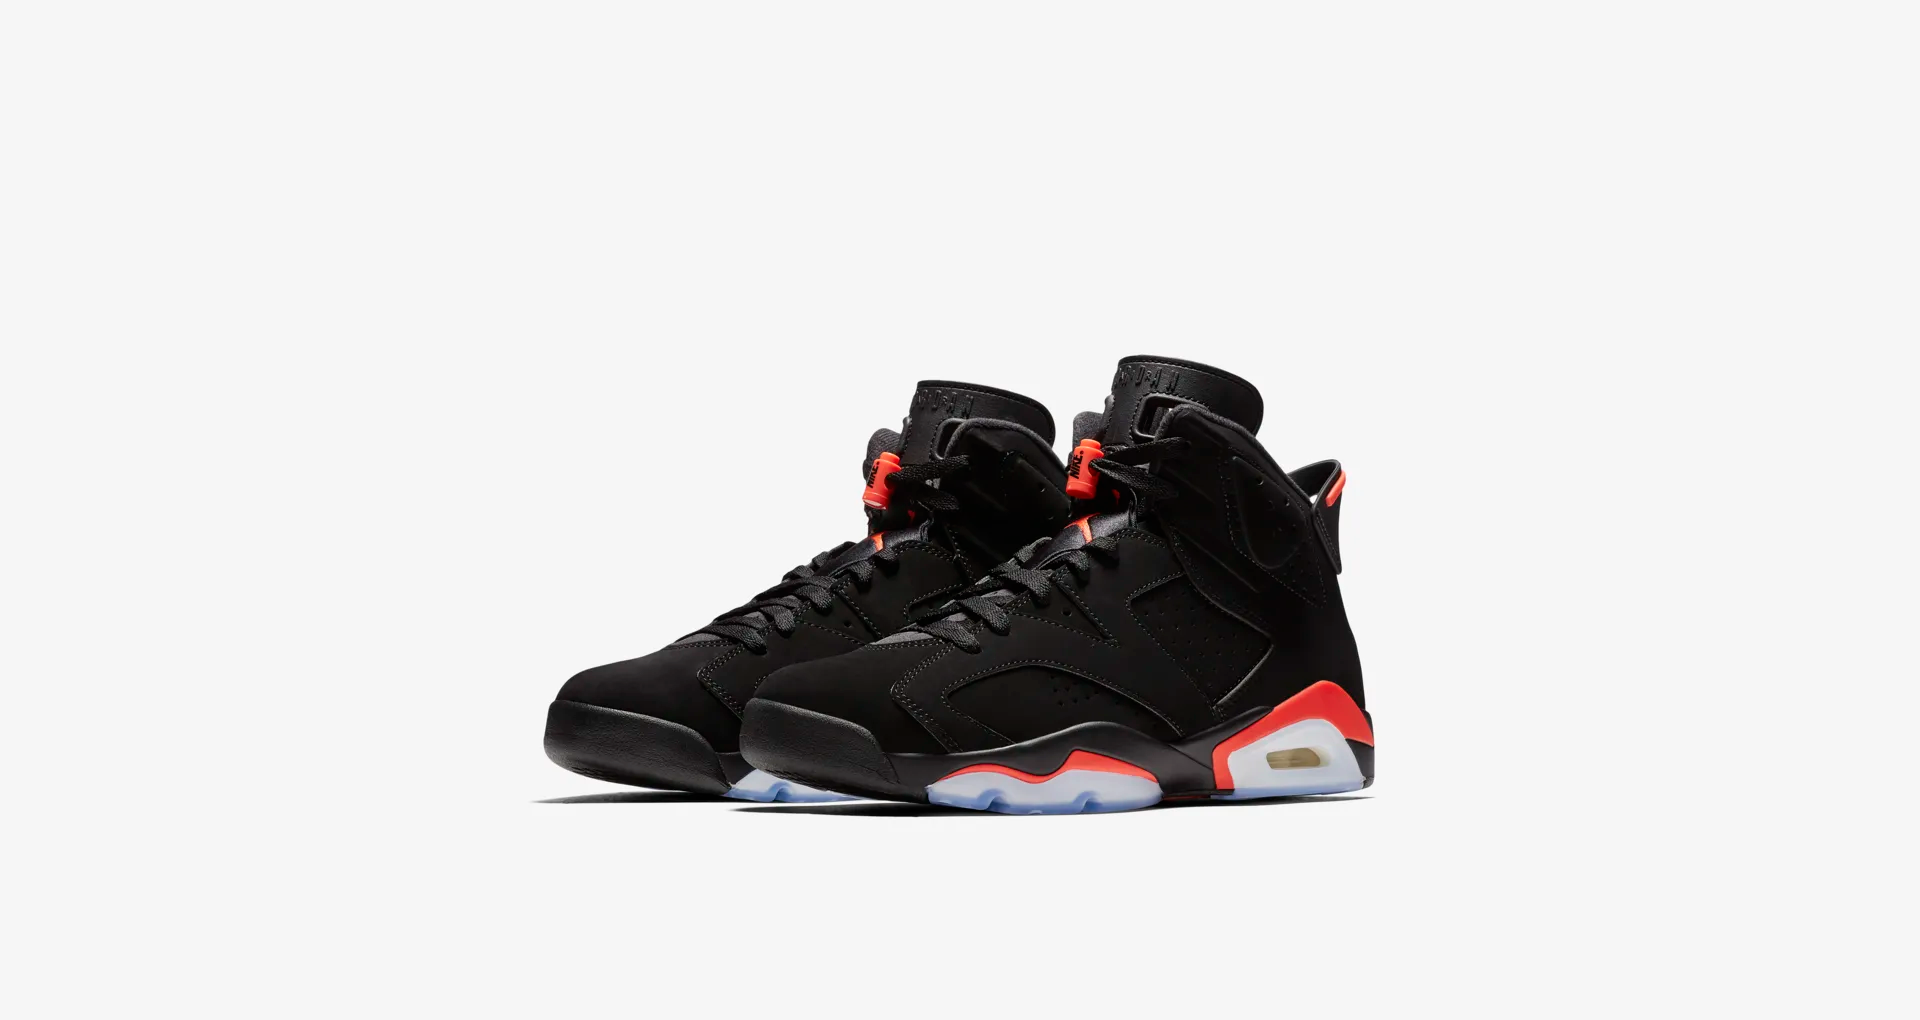 384664 060 Air Jordan 6 Retro Black Infrared OG 1